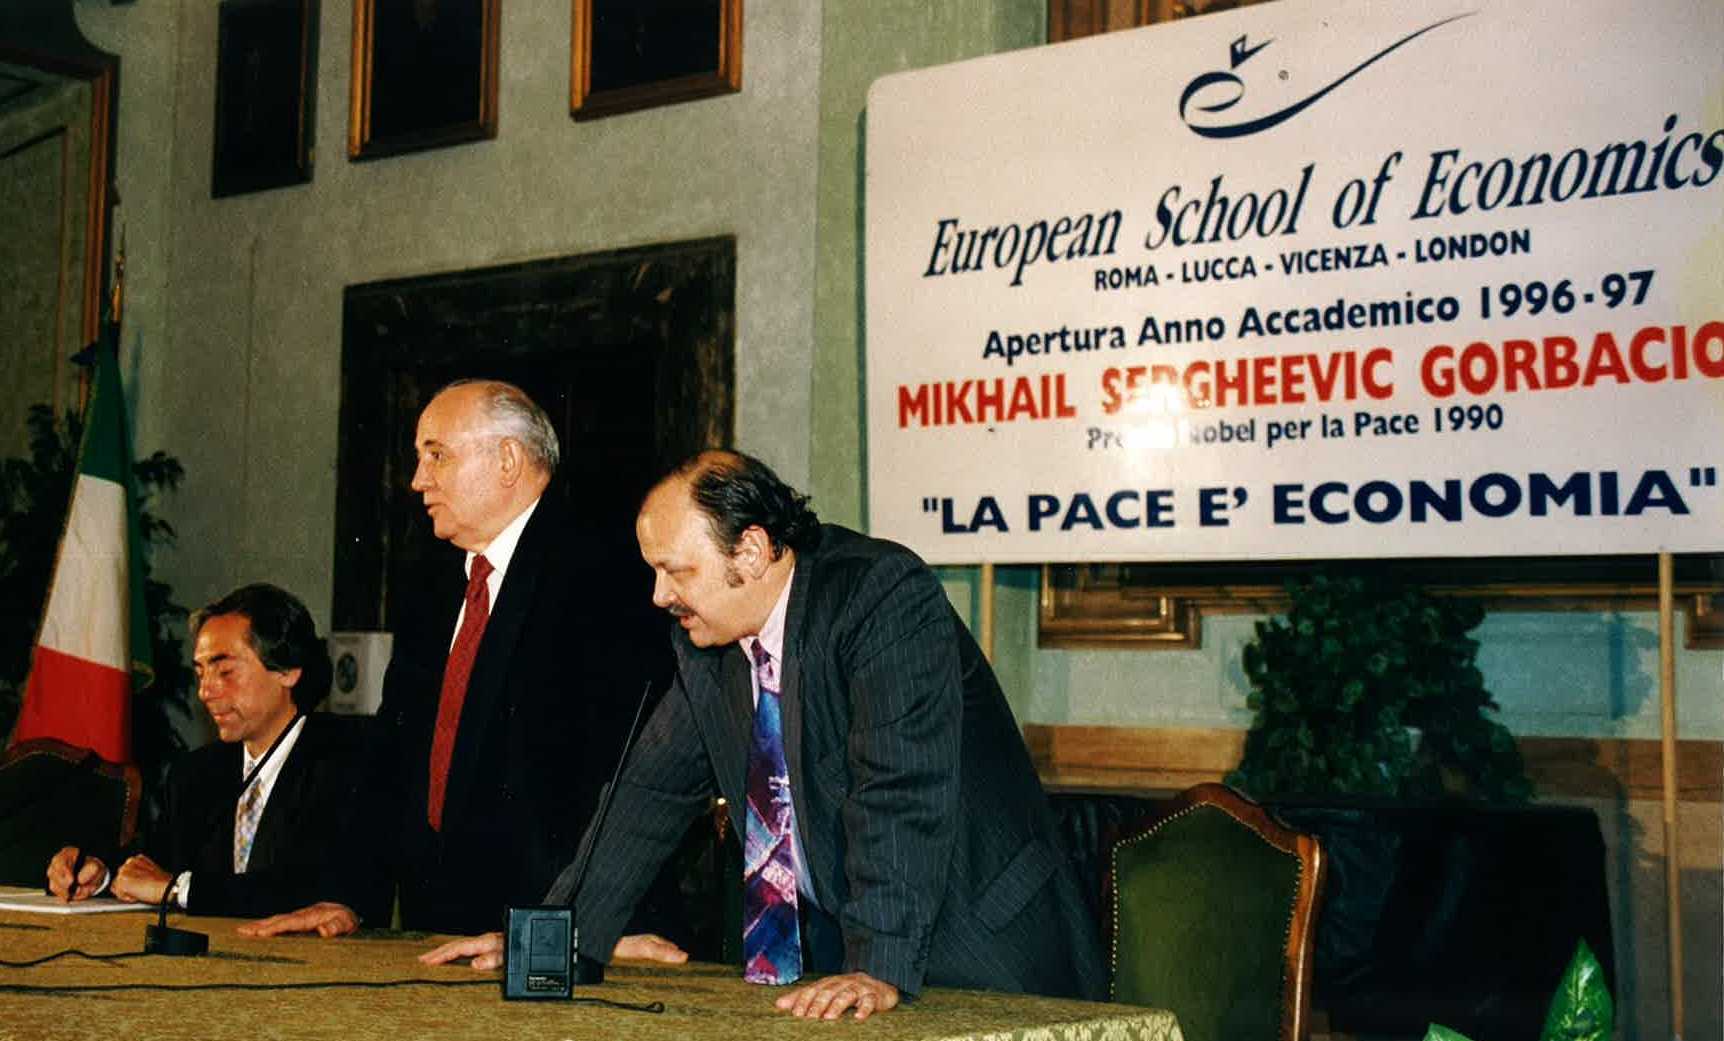 european school of economics nobel